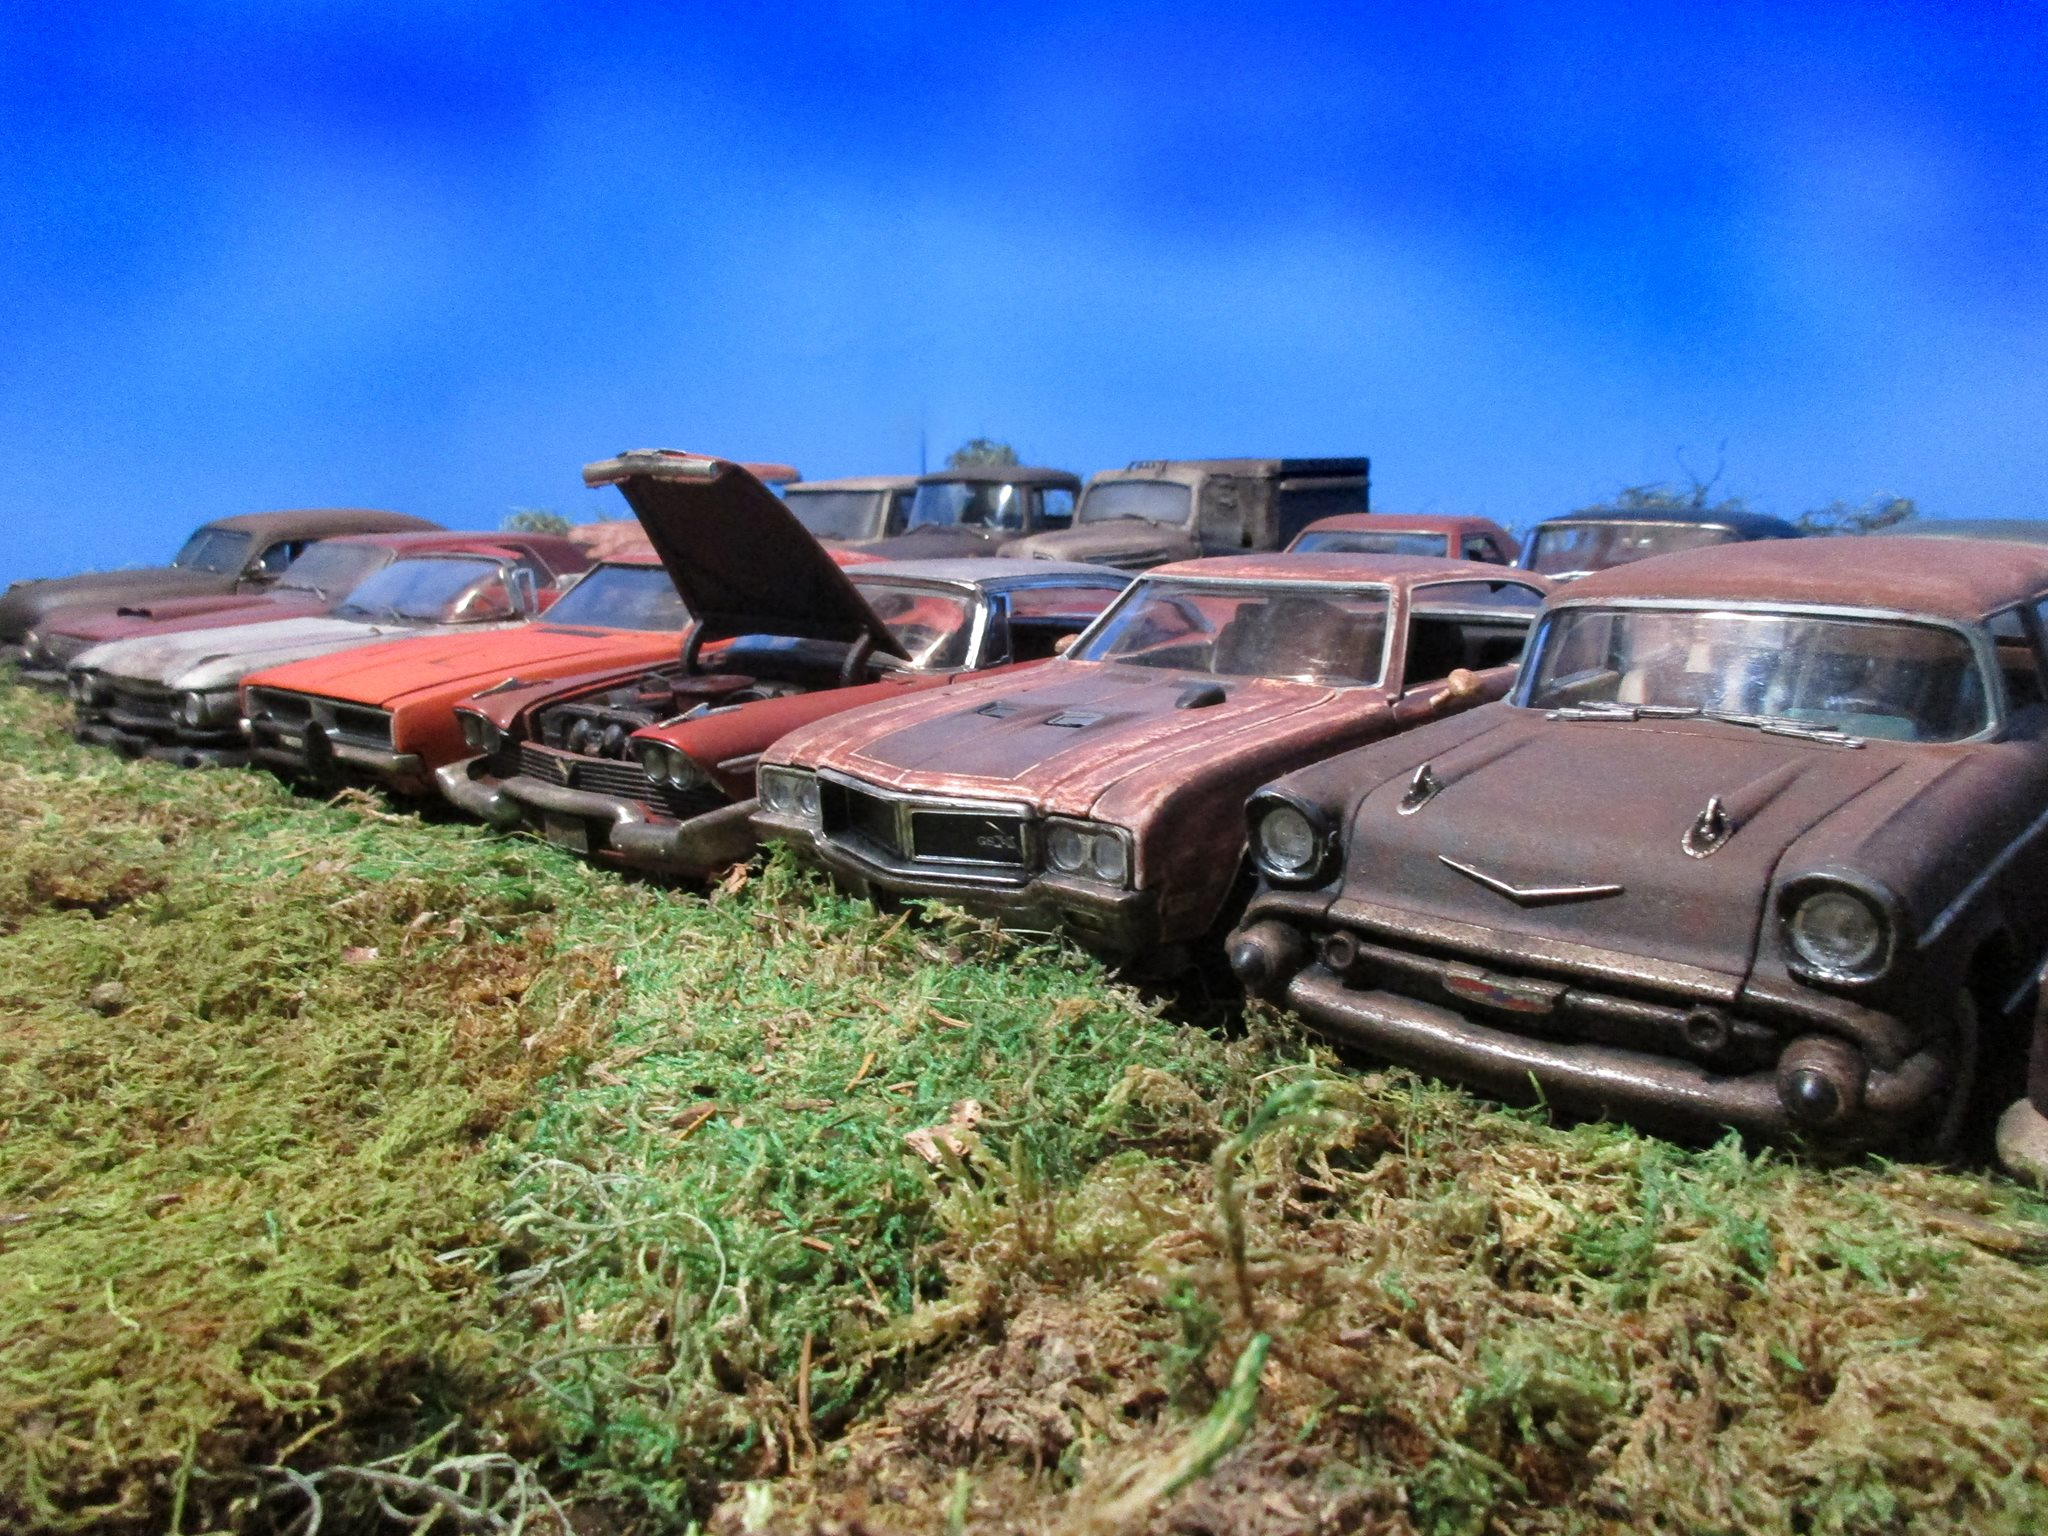 Toasted---Autos-Weathered-Die-Cast-Cars-3